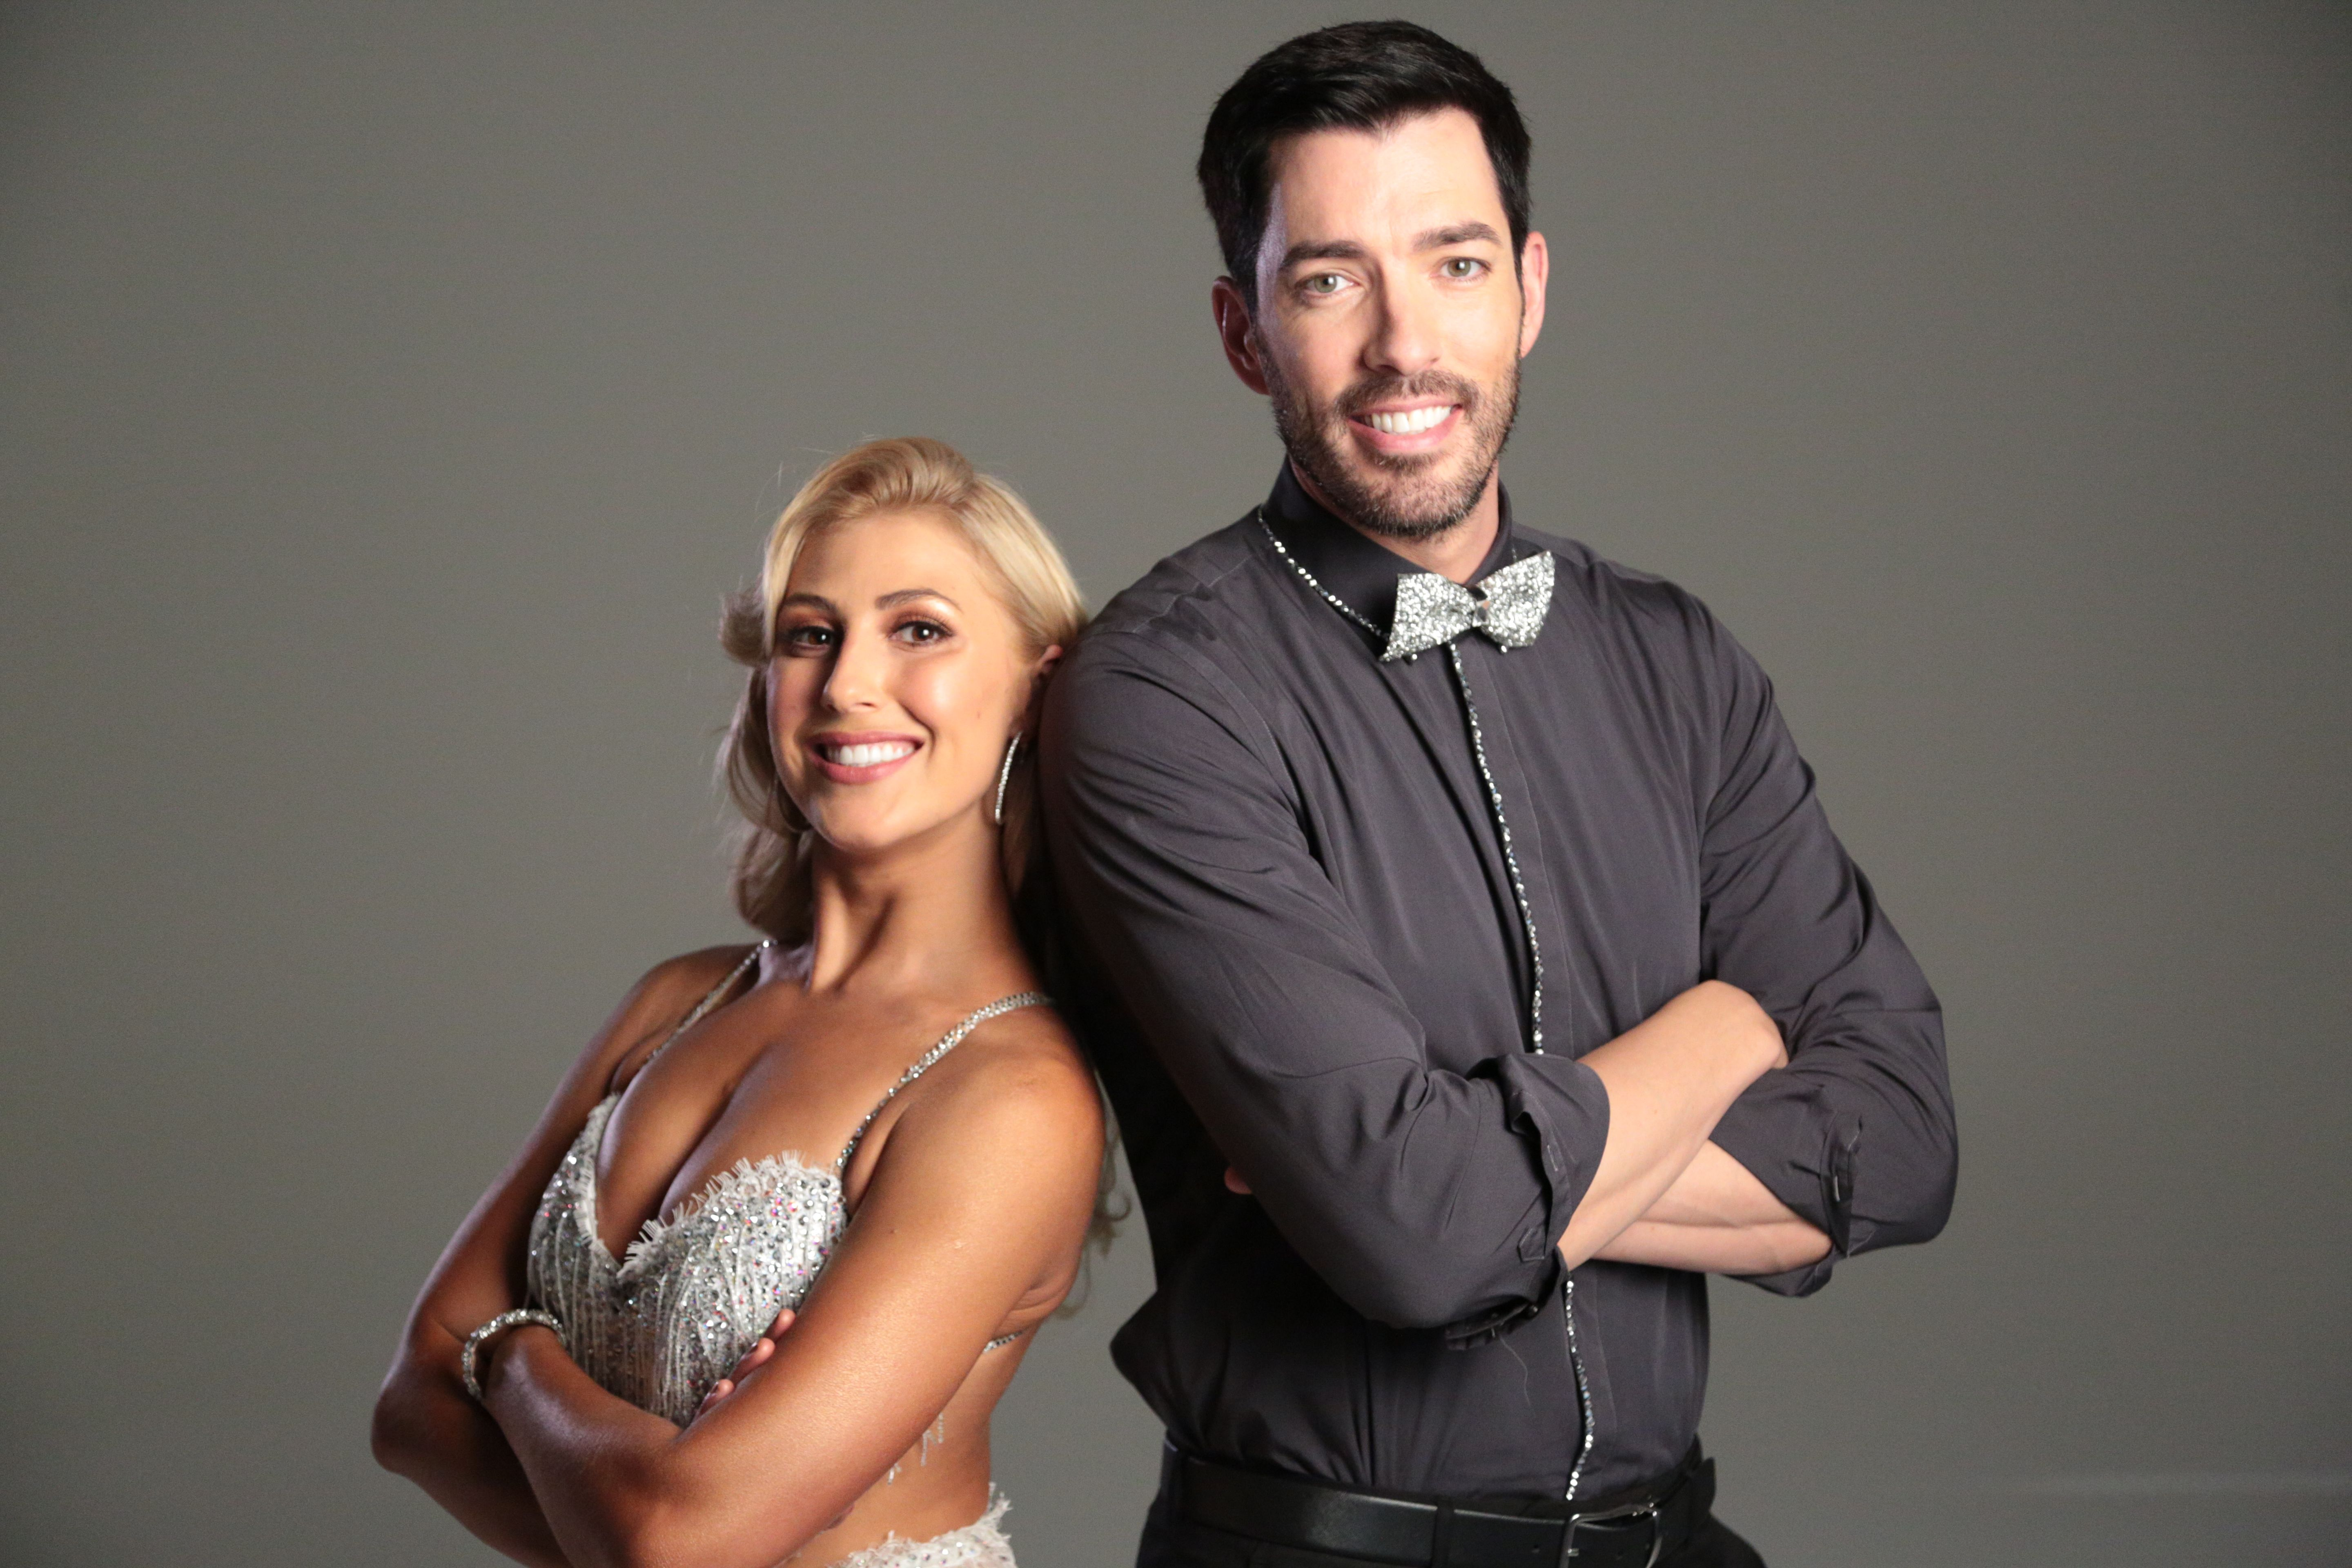 Pin On Dancing With The Stars